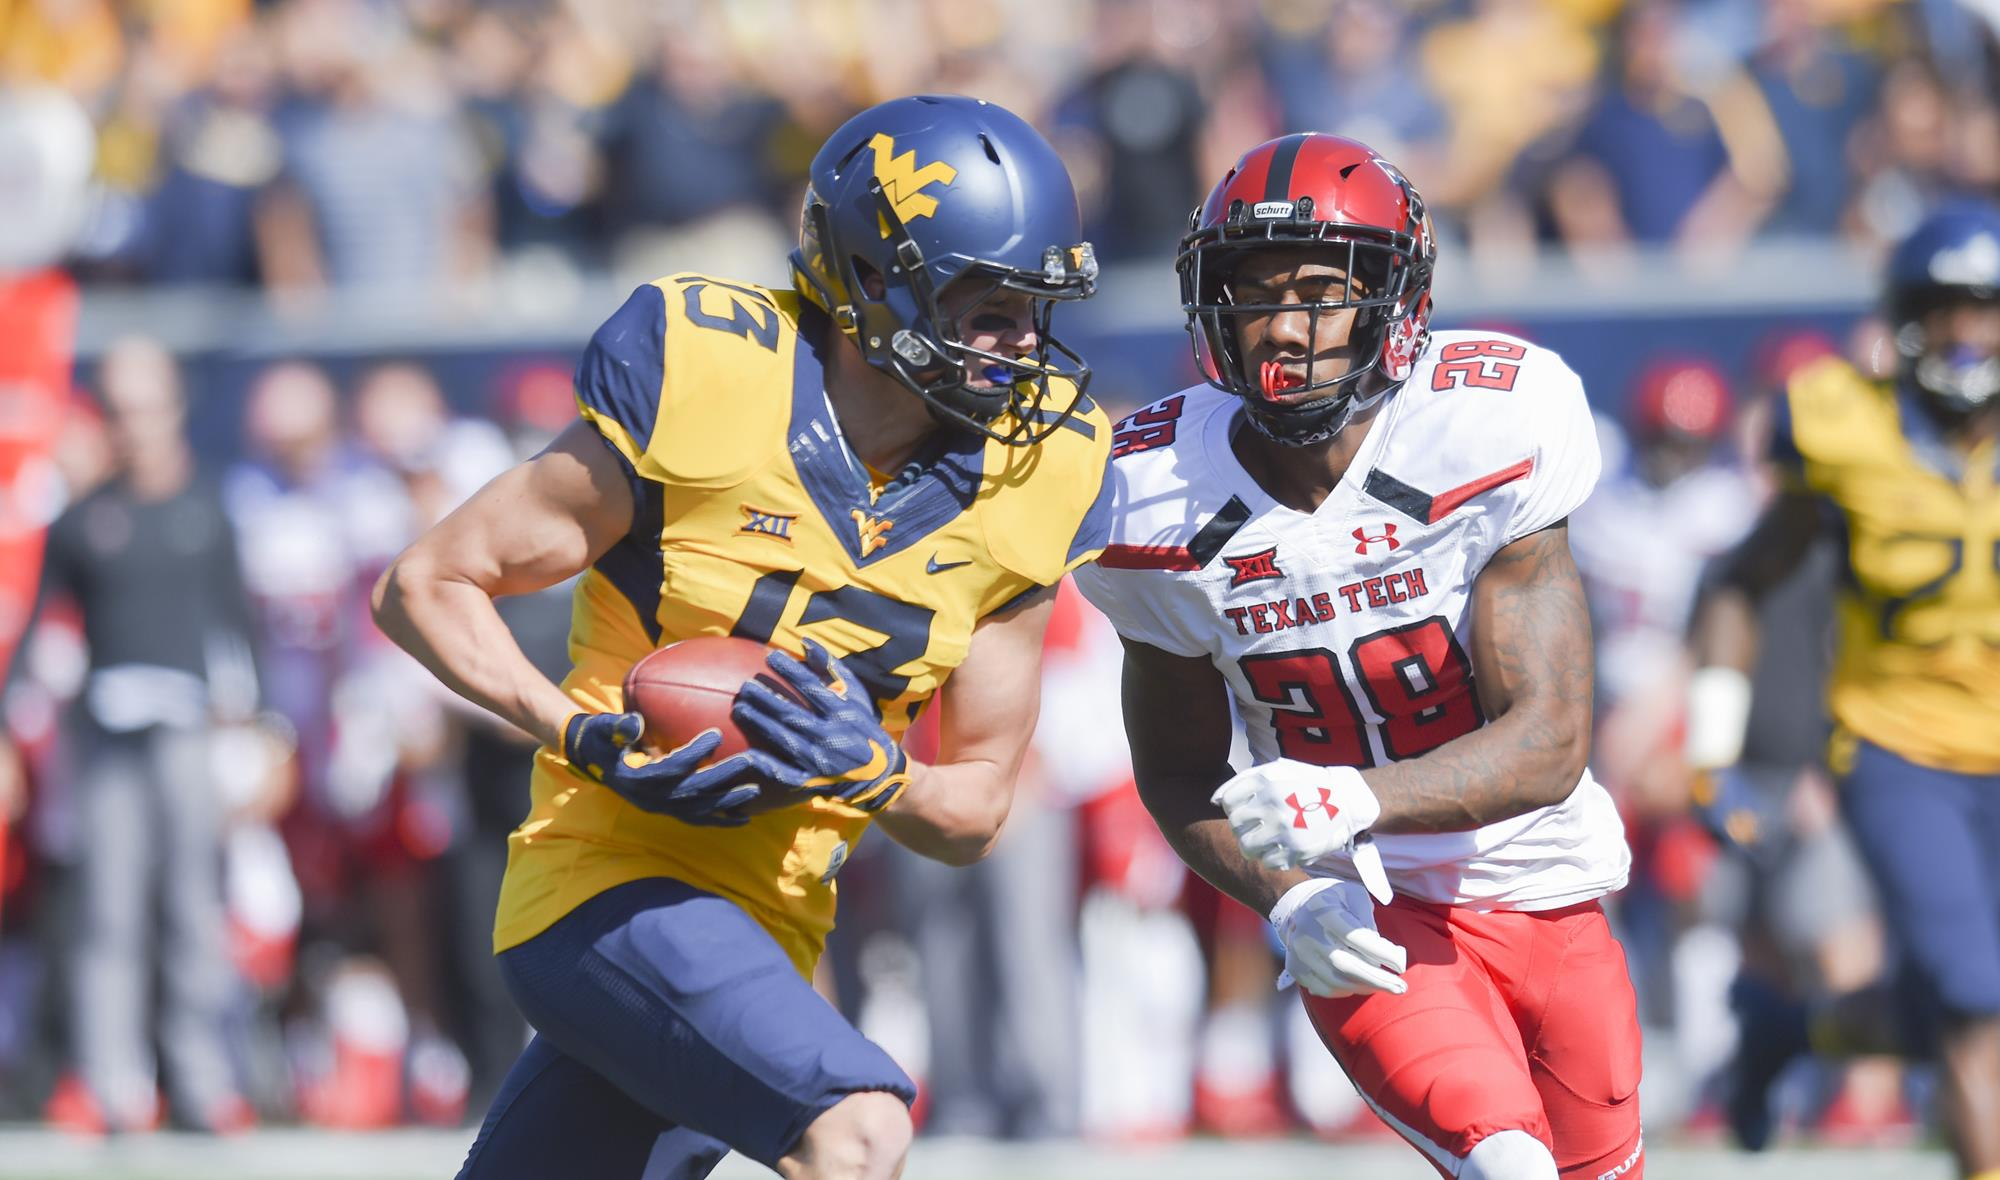 Nearly 5,000 Tickets Remain For WVU Bowl Game, David Sills, Zaxby's Heart of Dallas Bowl, David Sills